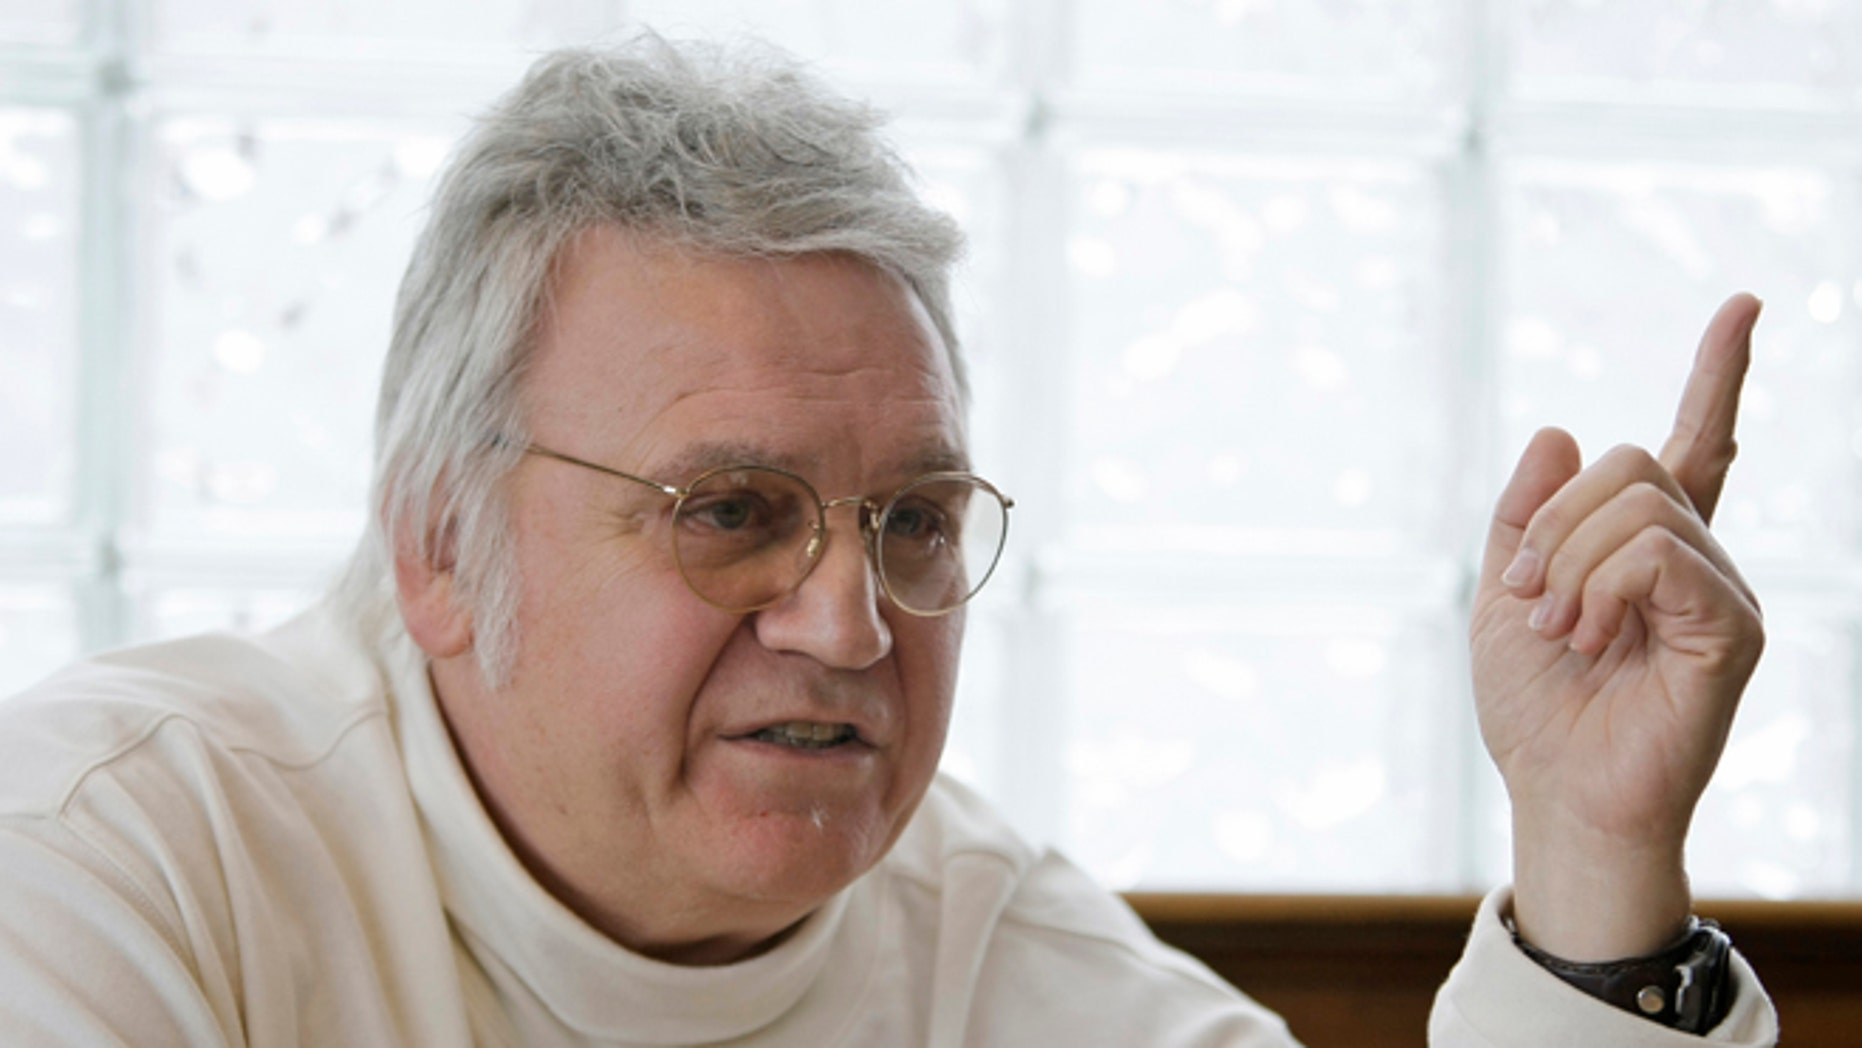 FILE: Feb. 25, 2010: Former Rep. James Traficant, D-Ohio, at a diner in Boardman, Ohio.